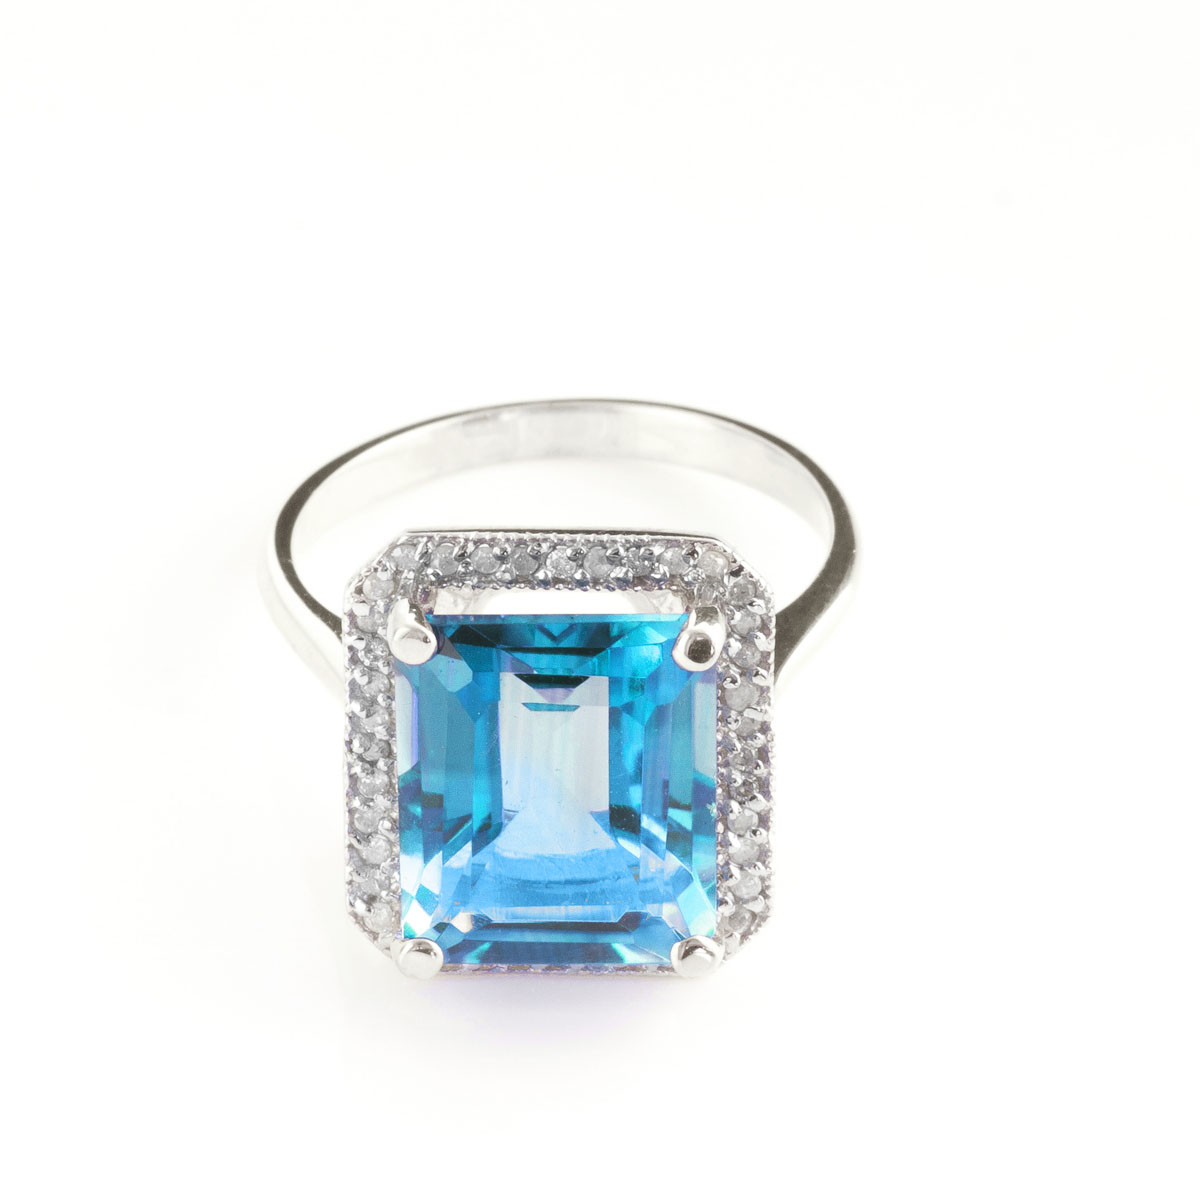 Blue Topaz Halo Ring 7.8 ctw in 18ct White Gold